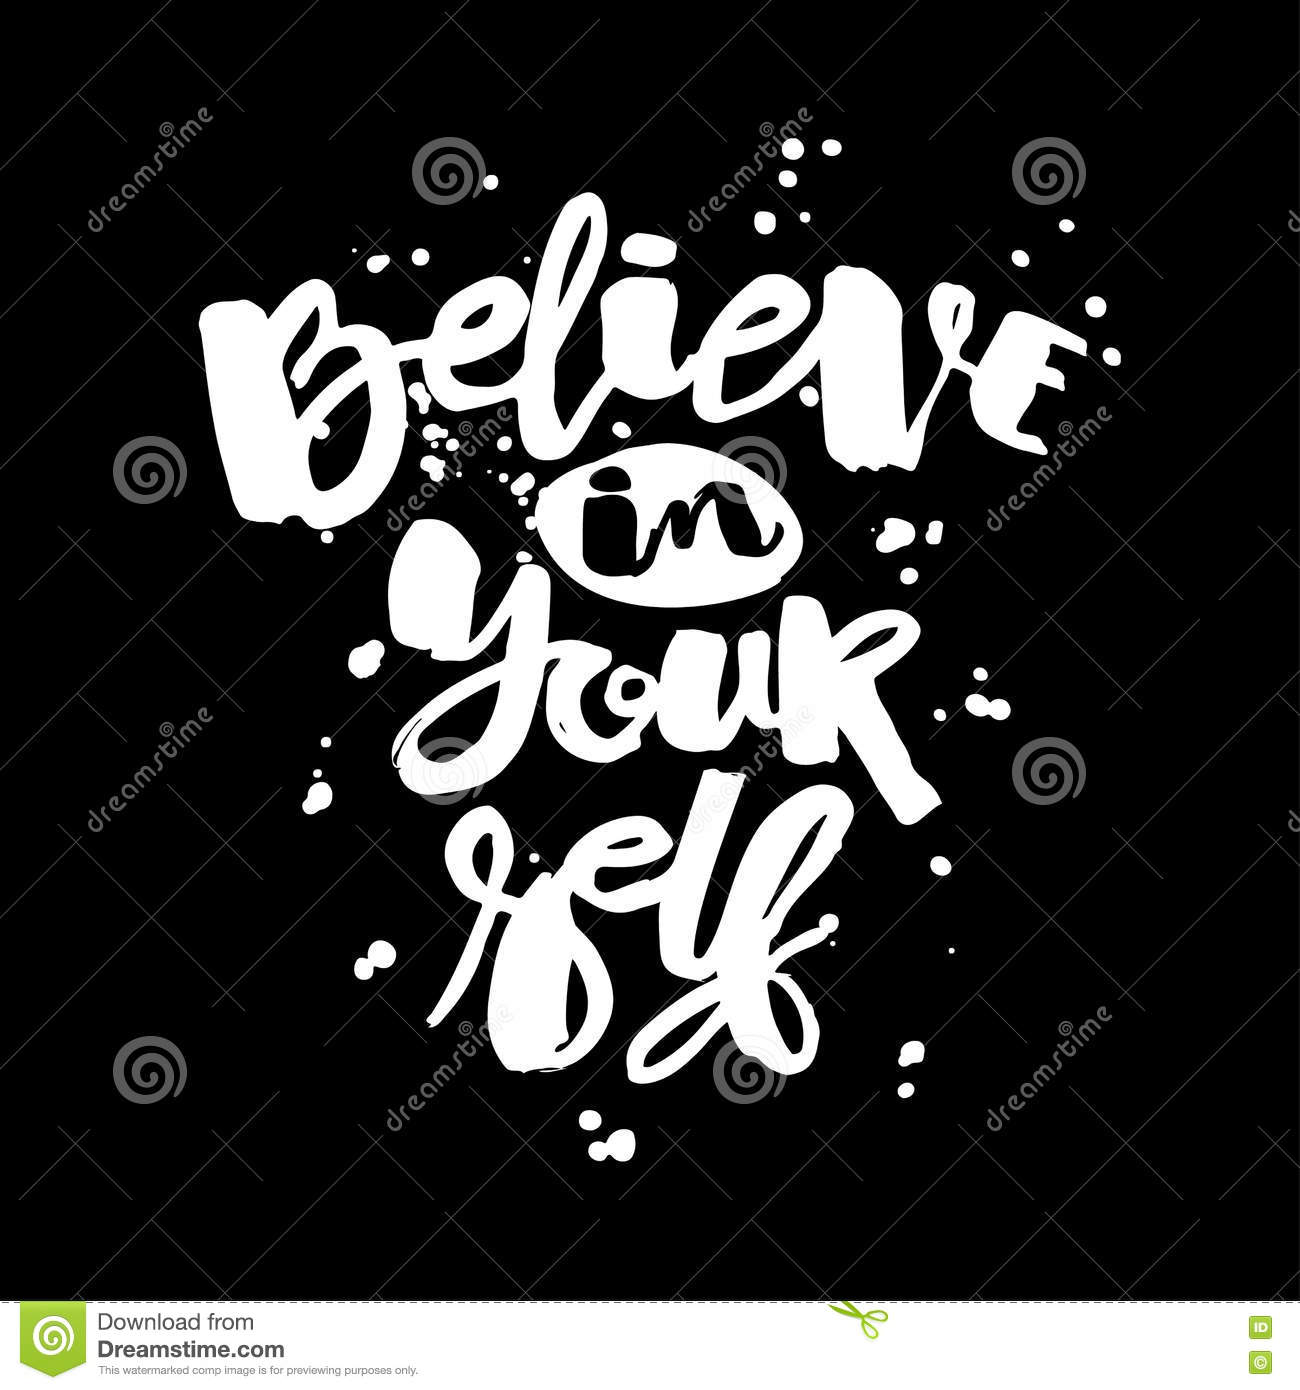 Believe In Yourself Hand Lettering Ink Drawn Motivation Poster